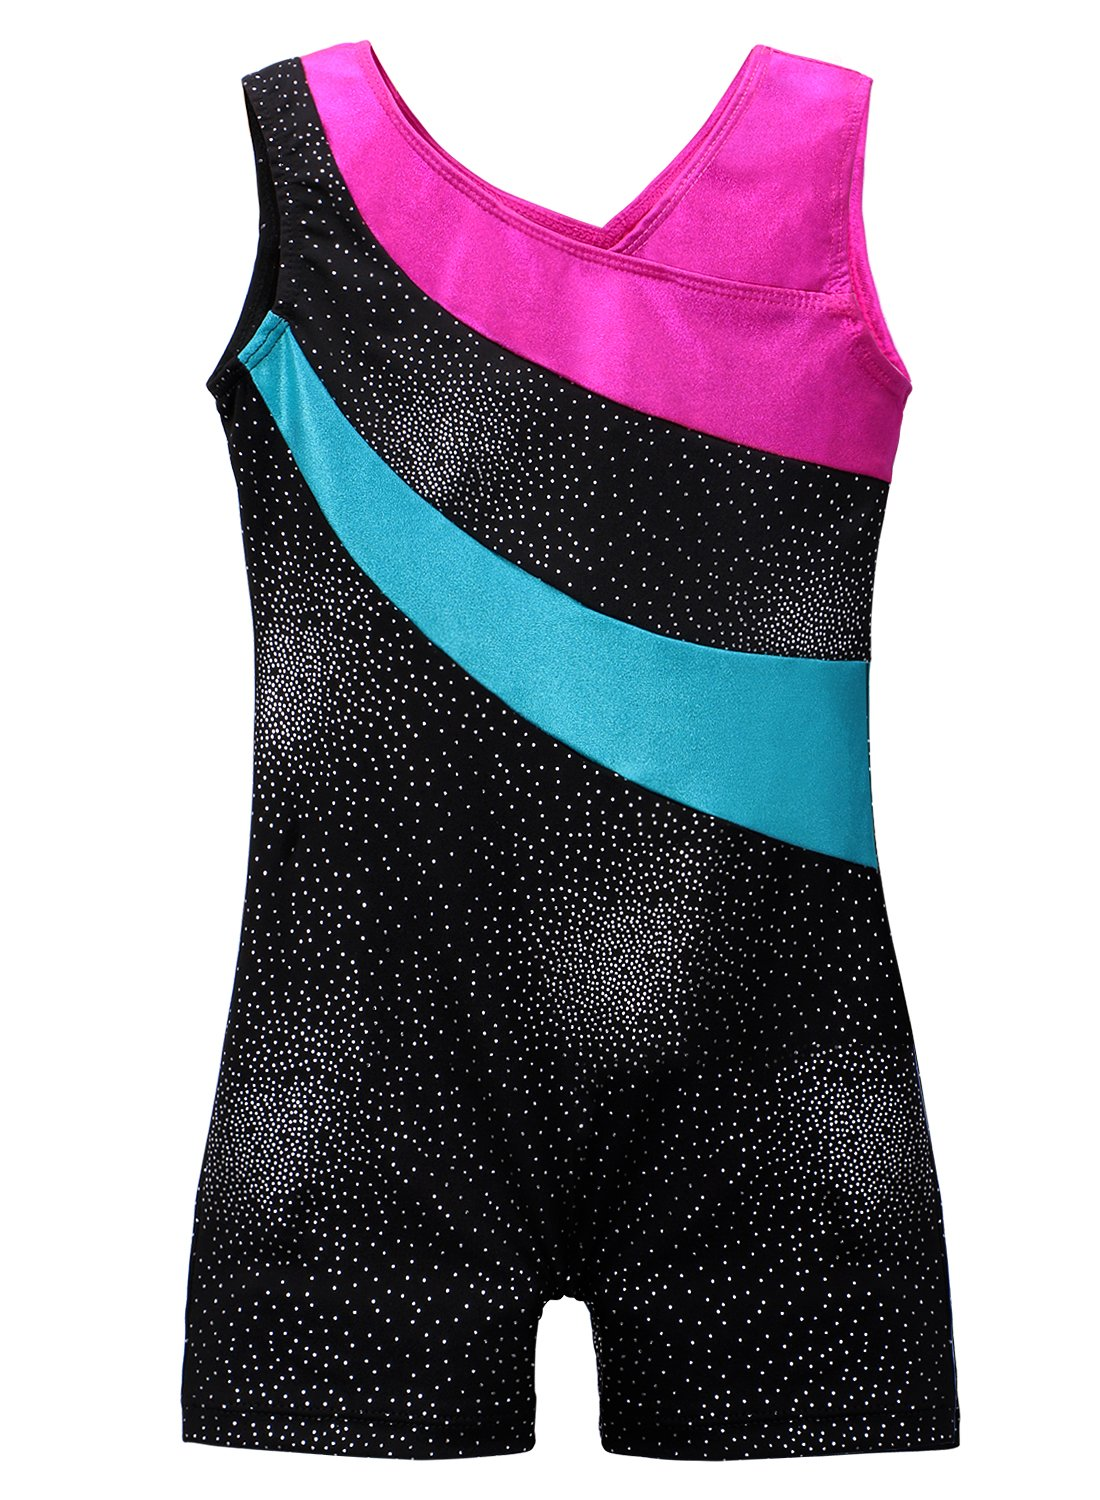 DAXIANG One-Piece Colorful Ribbons Gymnastics Leotard Sleeveless Dance Unitards for Little Girl (100(3-4Y), Black) by DAXIANG (Image #1)